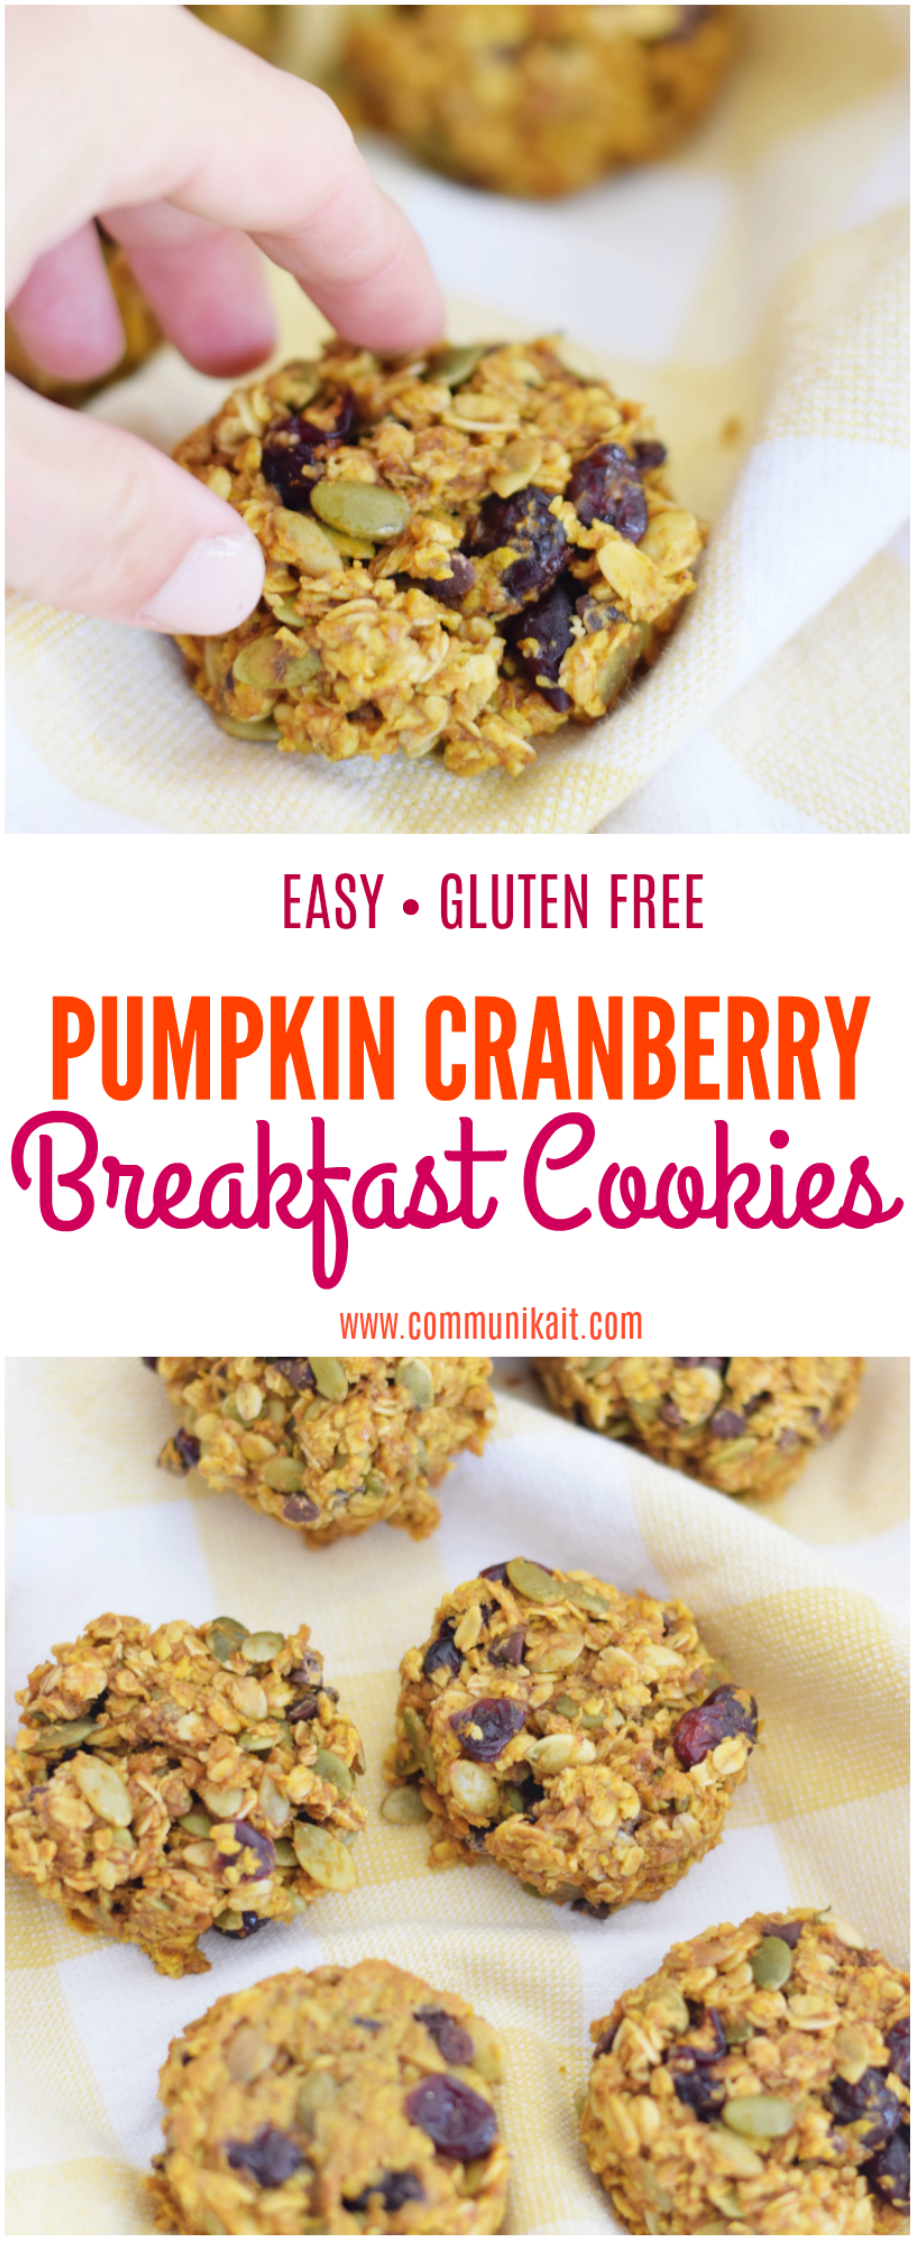 Pumpkin Cranberry Breakfast Cookie - Healthy Breakfast Idea - Breakfast Cookie Recipe - Healthy Breakfast For Kids - Breakfast Ideas - Healthy Snack - Easy Gluten Free Breakfast - Breakfast Option On The Go